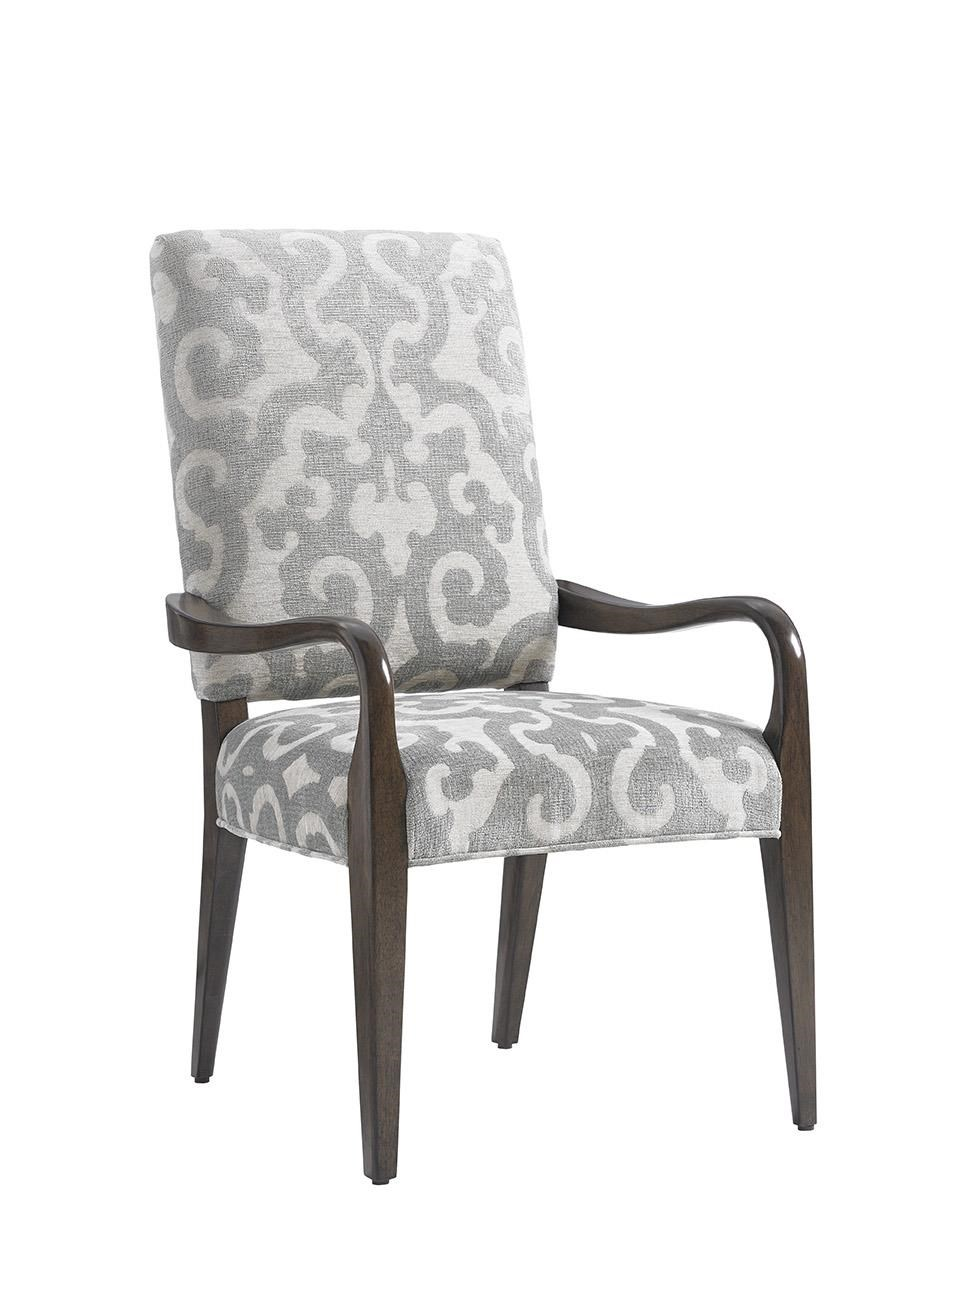 Sierra Dining Arm Chair Upholstered in Special Order Fabric